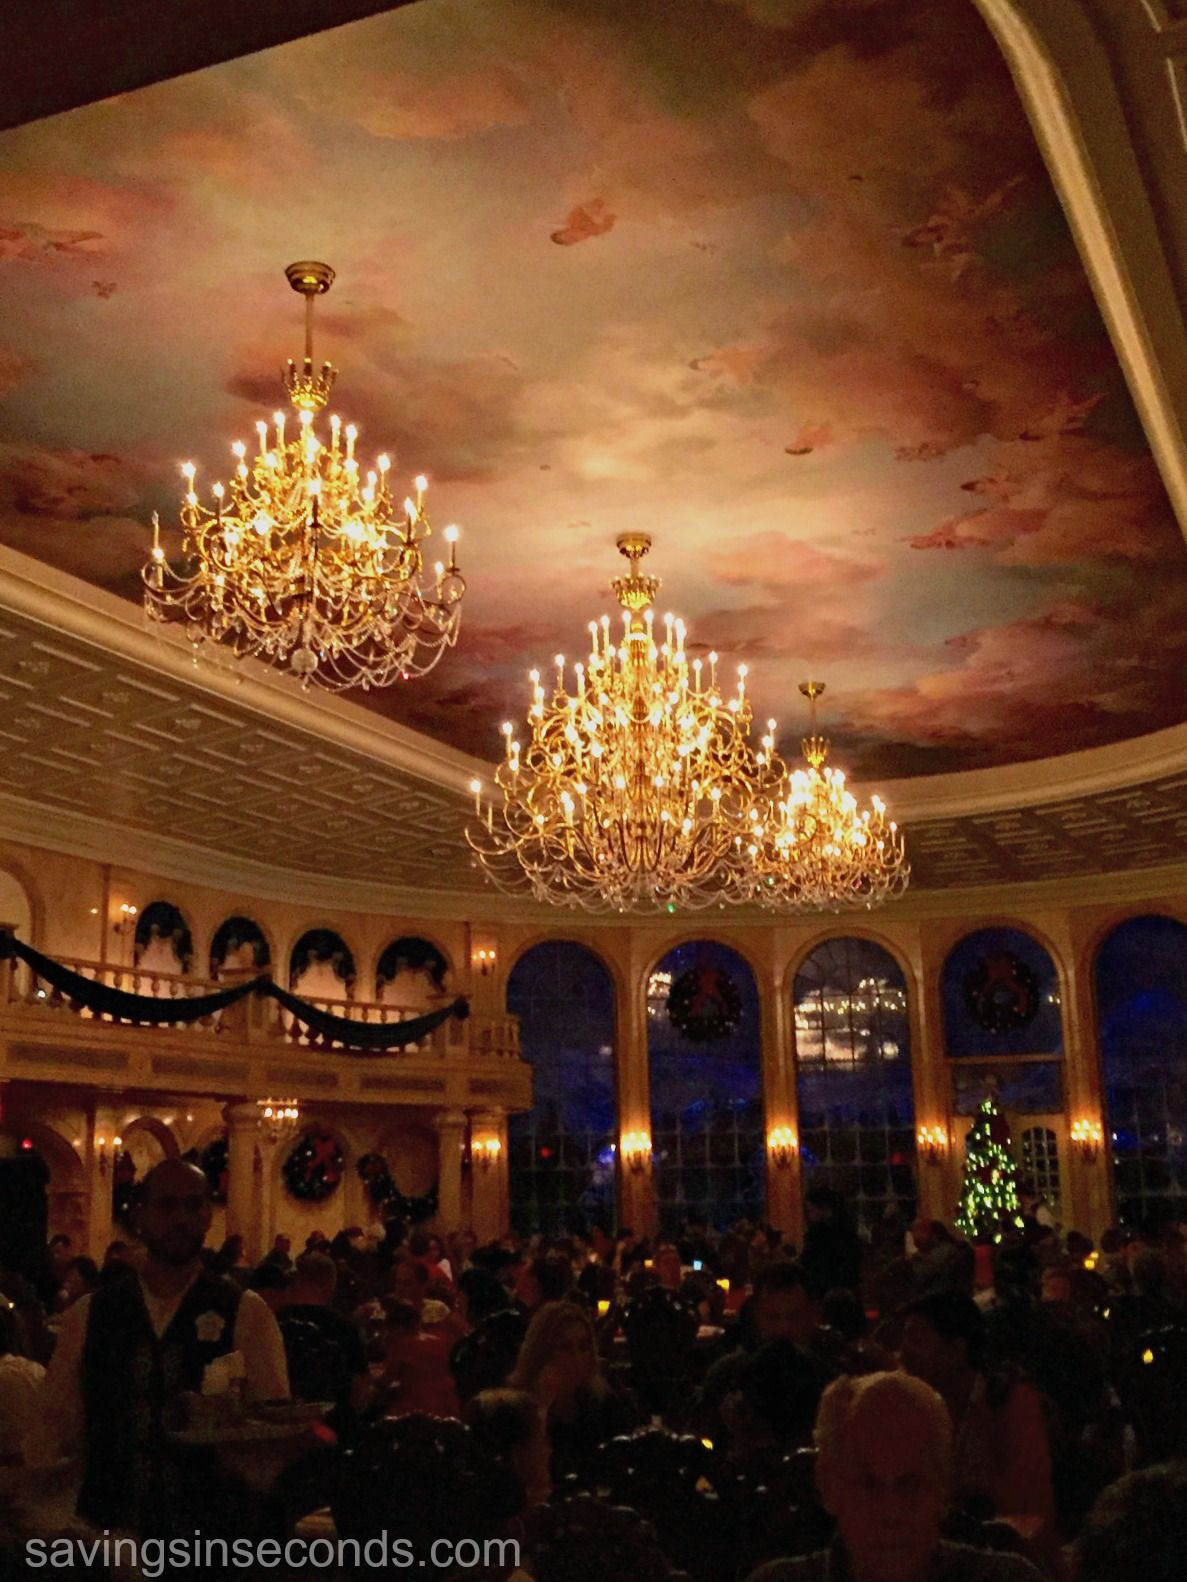 Savings In Seconds Disney Be Our Guest Restaurant Dinner Paypal